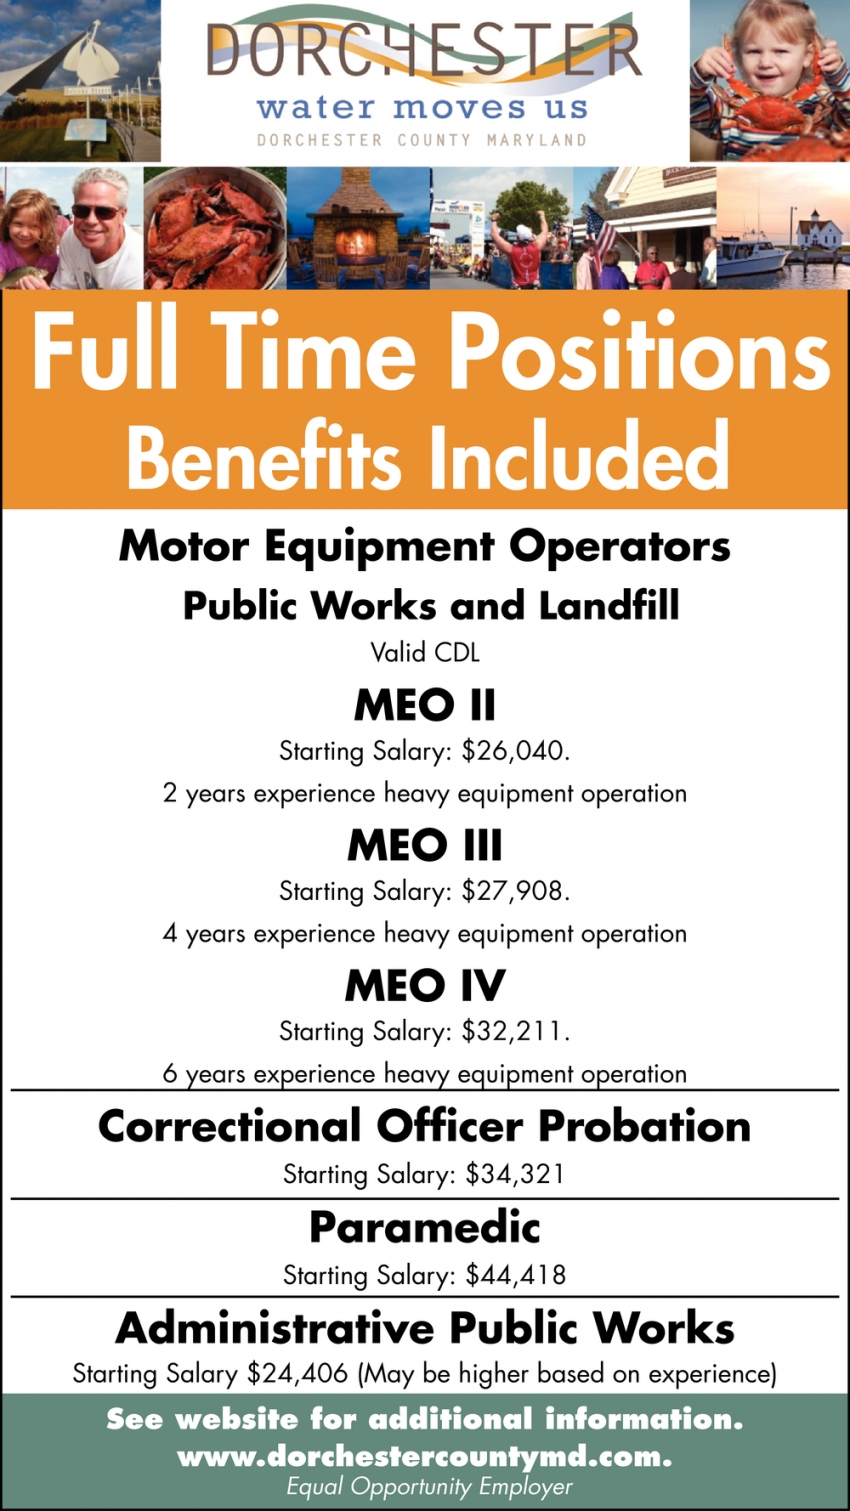 Motor Equipment Operators - Correctional Officer Probation - Paramedic - Administrative Public Works